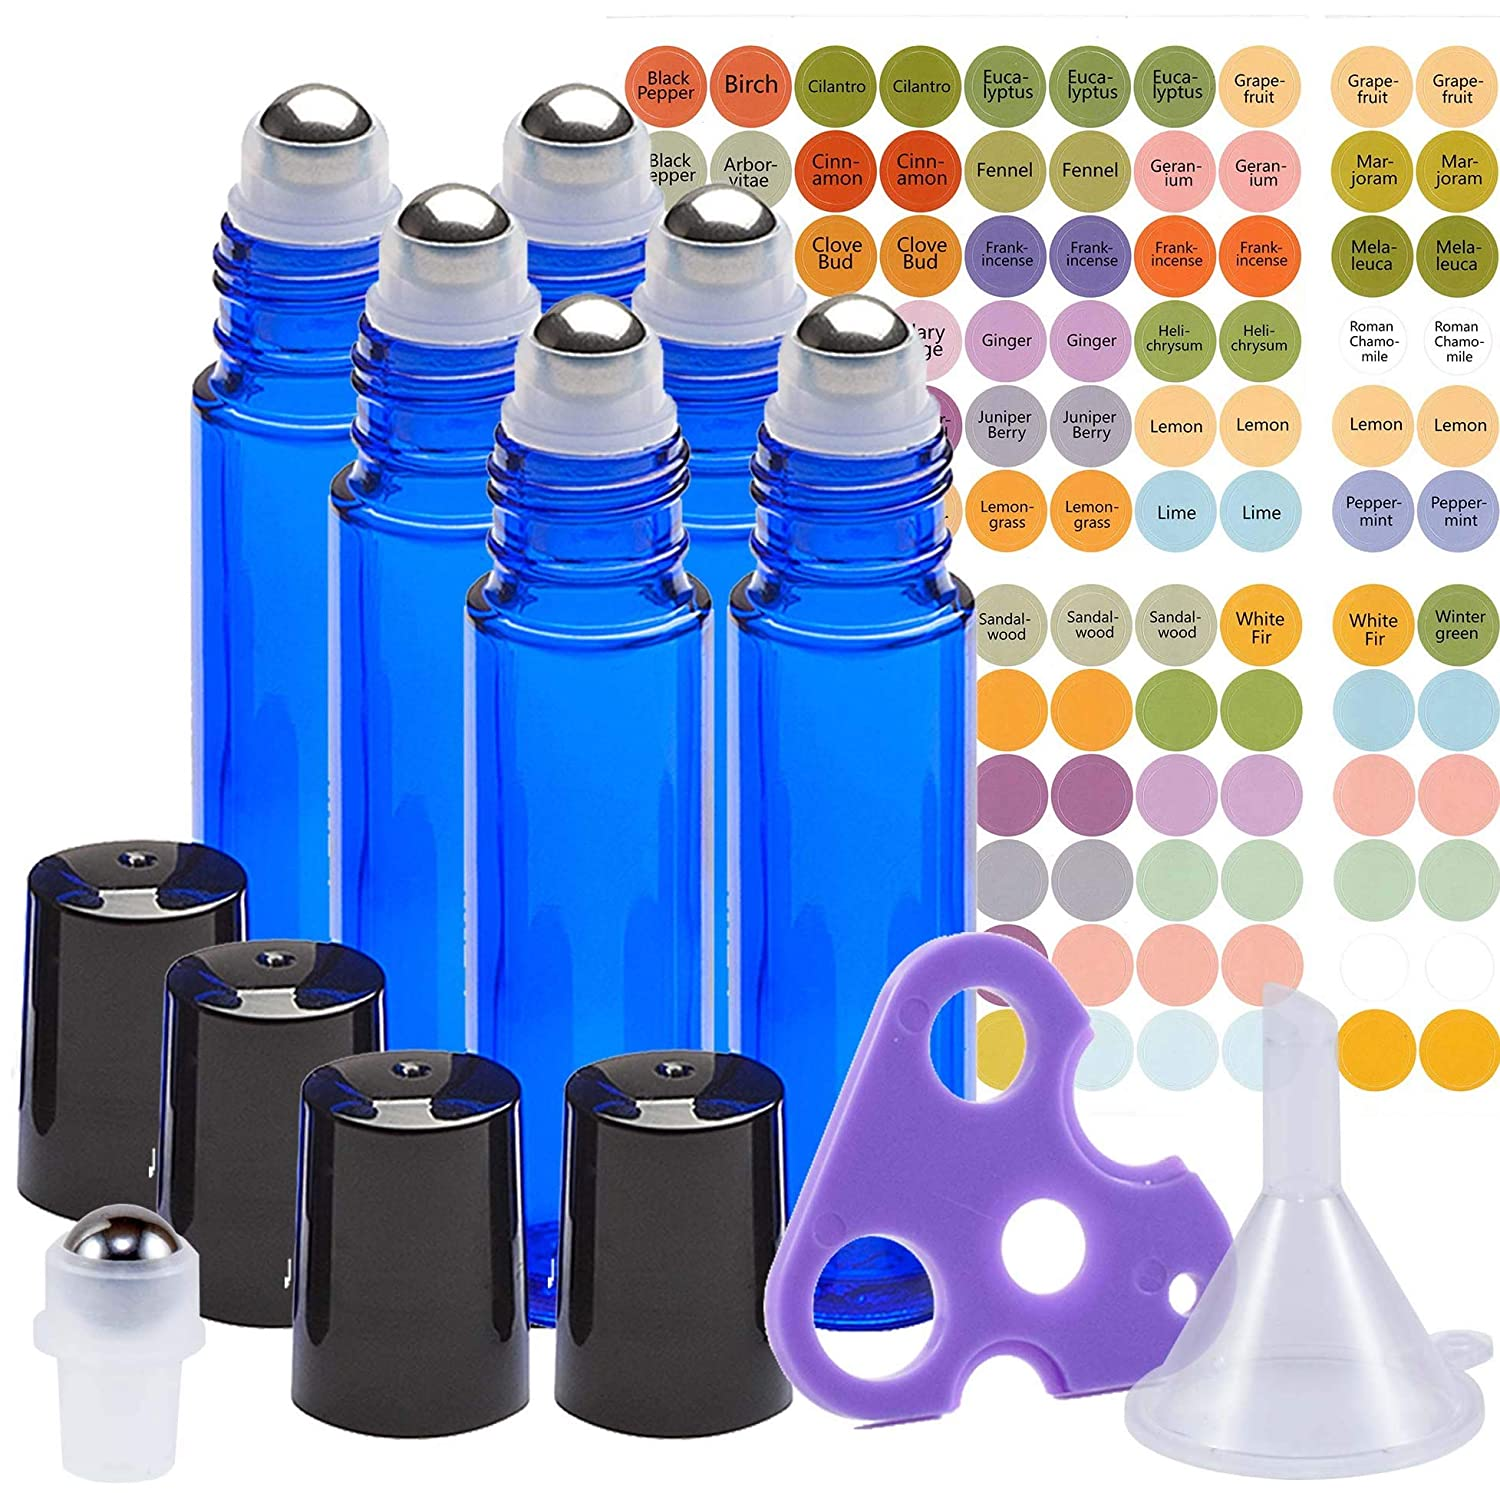 Ultimate Essential Oil Roller Bottles Set with Stainless Steel Balls, 6 Pack 10ml Dark Blue Leakproof Glass Bottle with 7 Rollerballs for Perfume & Aromatherapy Oils 1 Funnel + Opener & 192 Labels